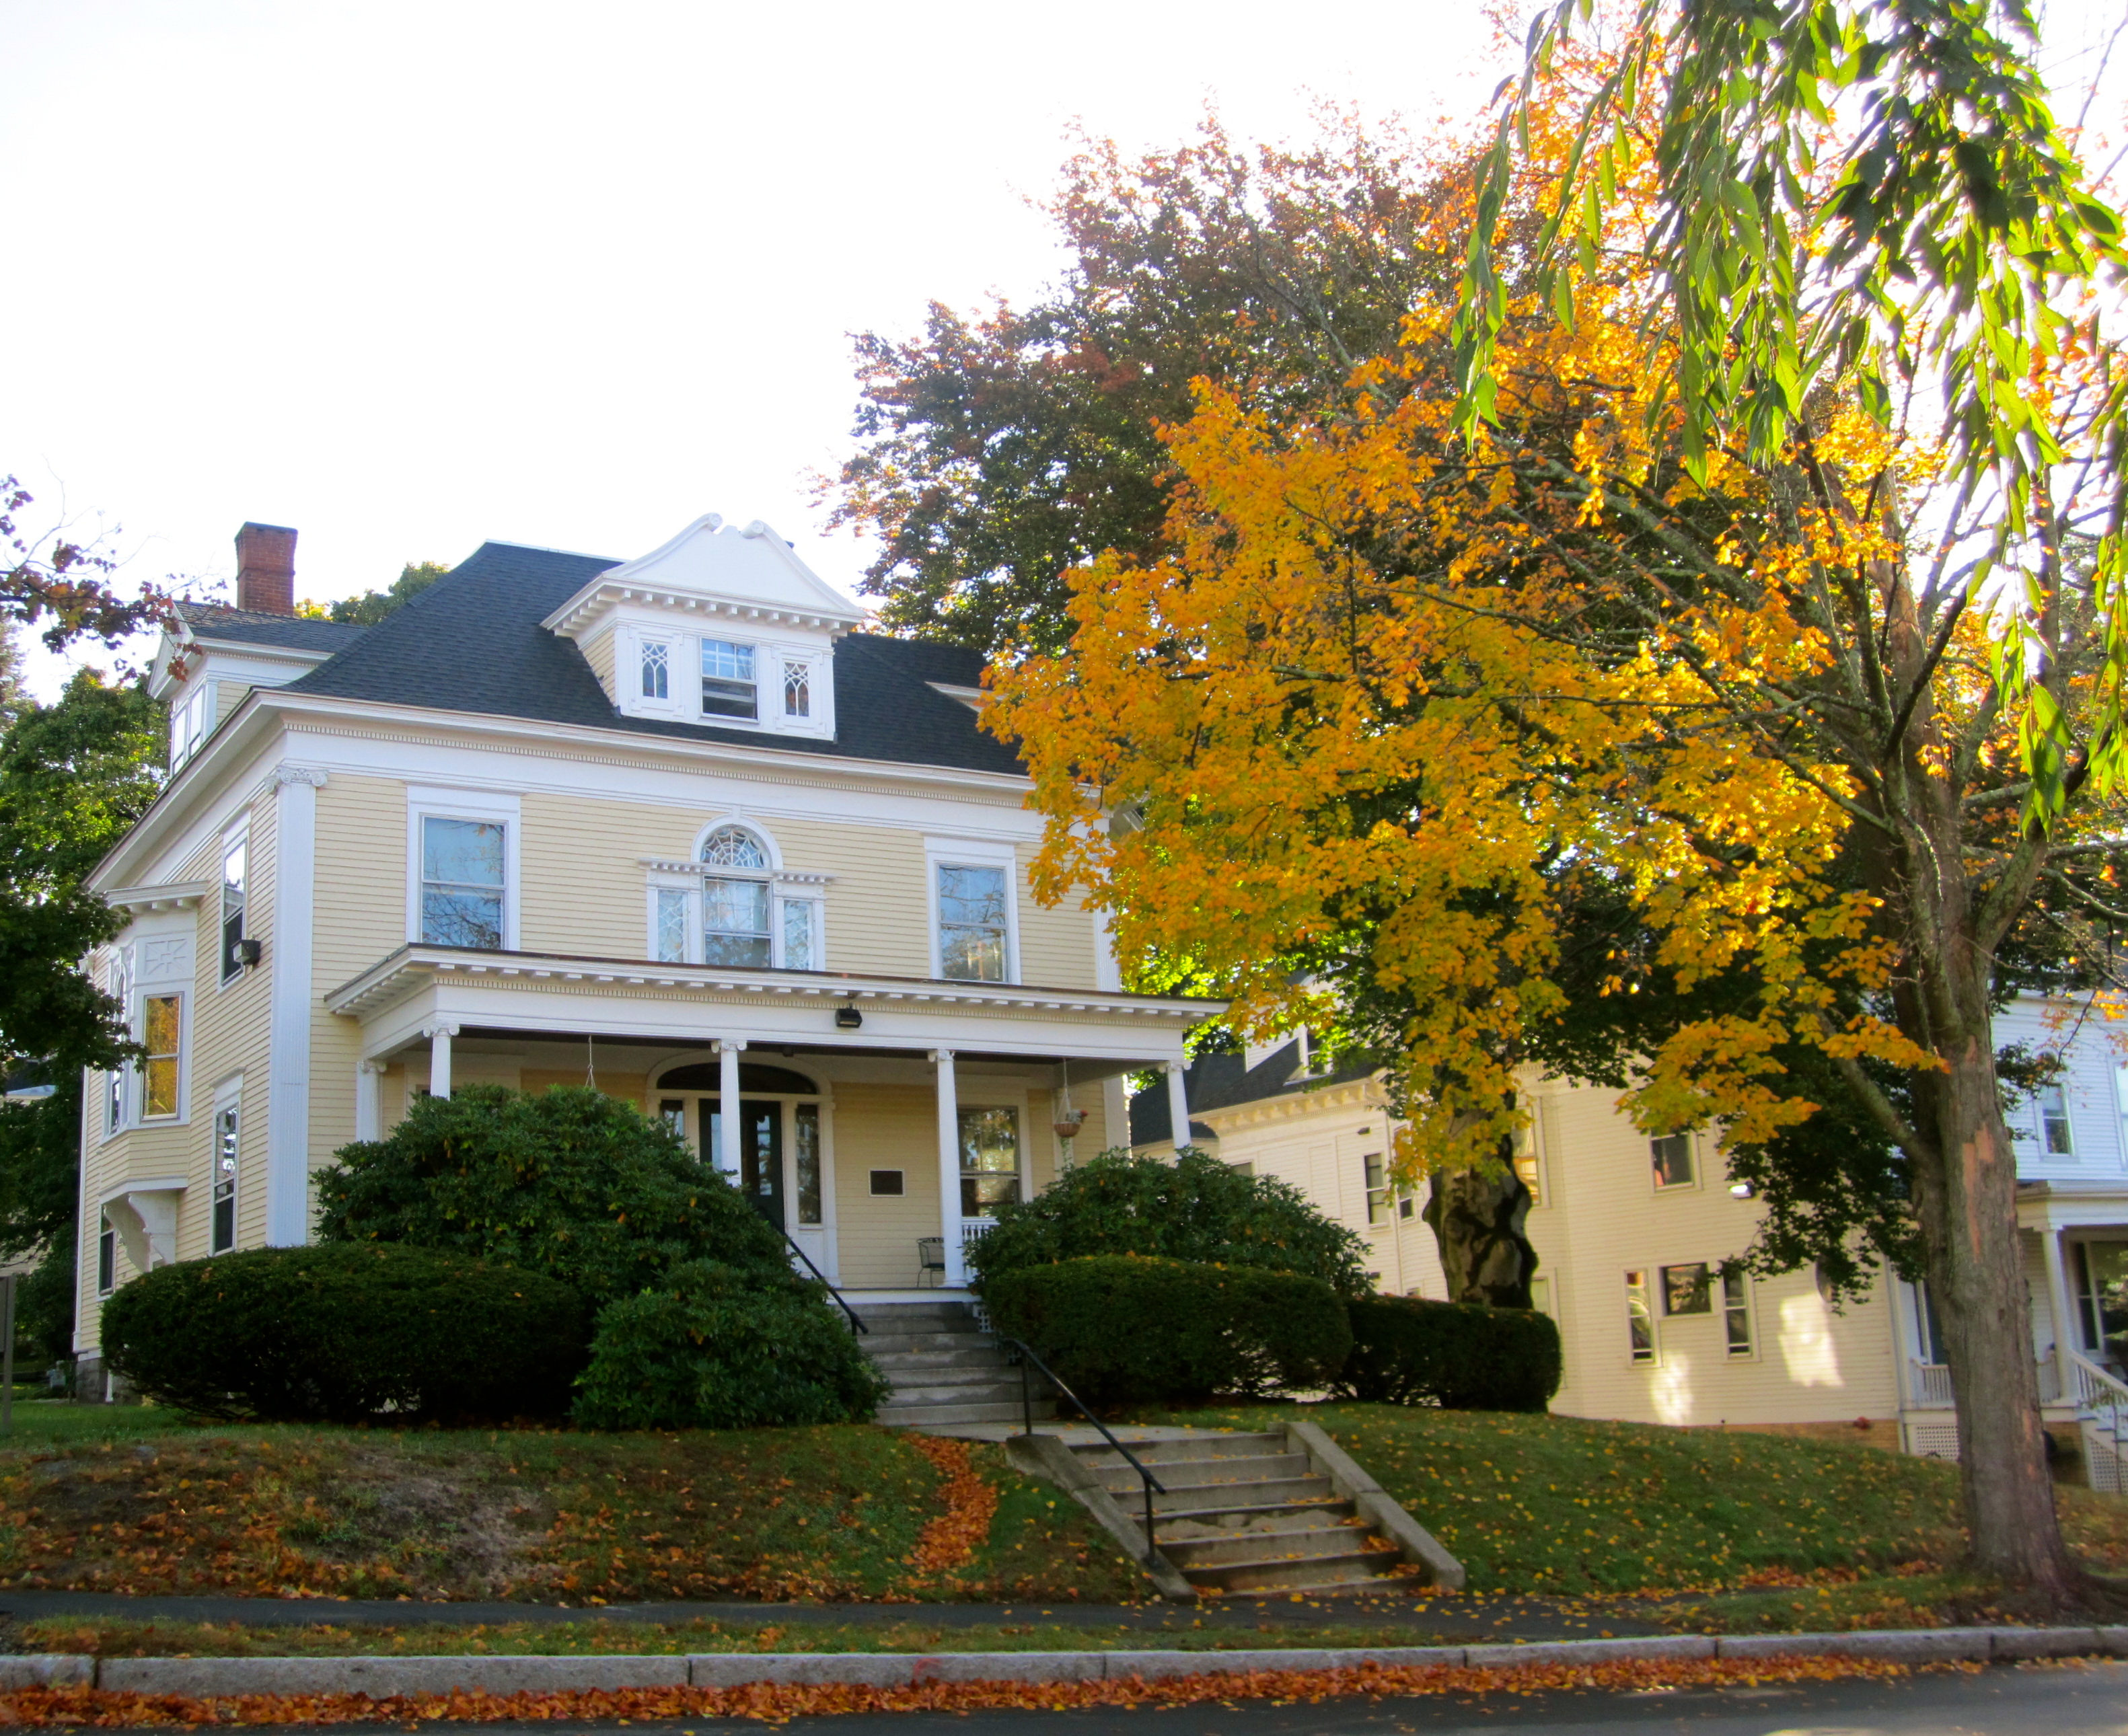 Fall scene with the Anderson Hous